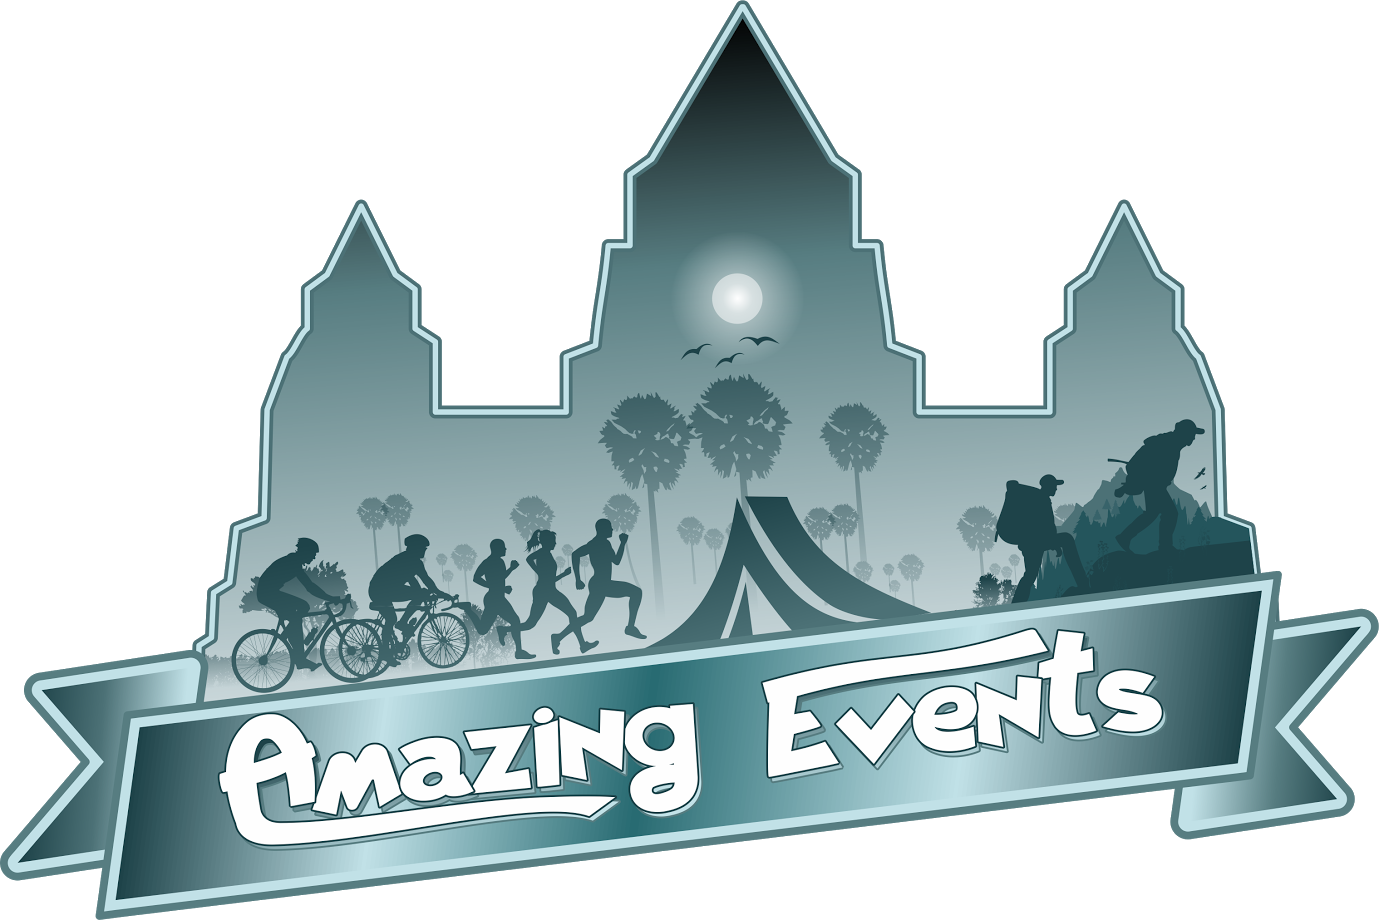 Uncategorized | Cambodia Amazing Events | Cambodia Events | Night Run | Marathon | Fun Run | Angkor Night Run